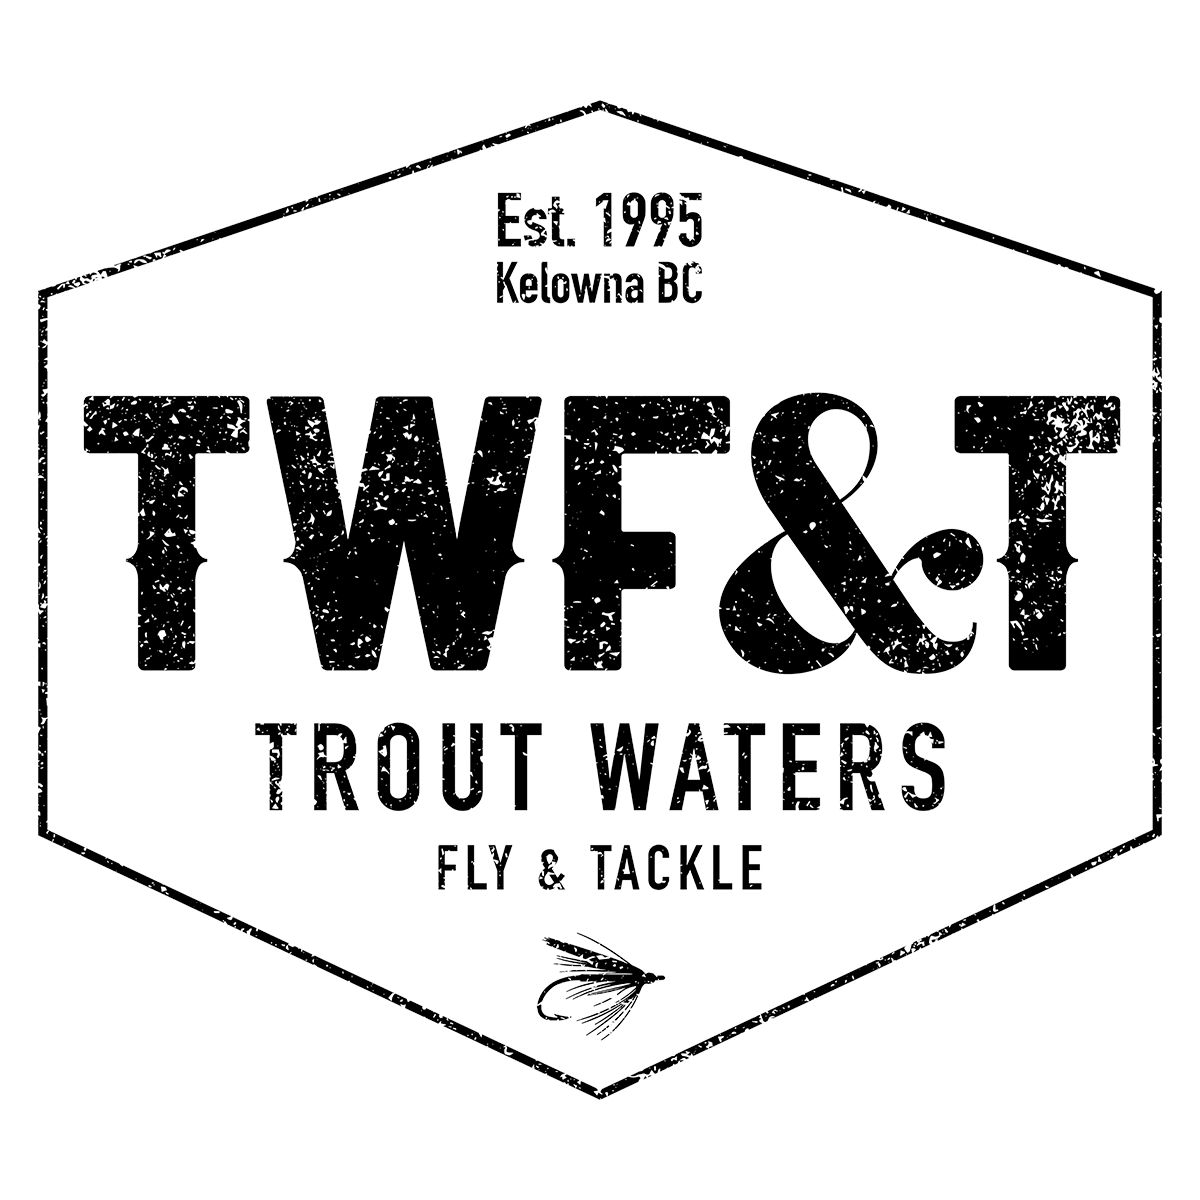 Trout Waters Fly & Tackle | Patagonia Retailer & Fly Fishing